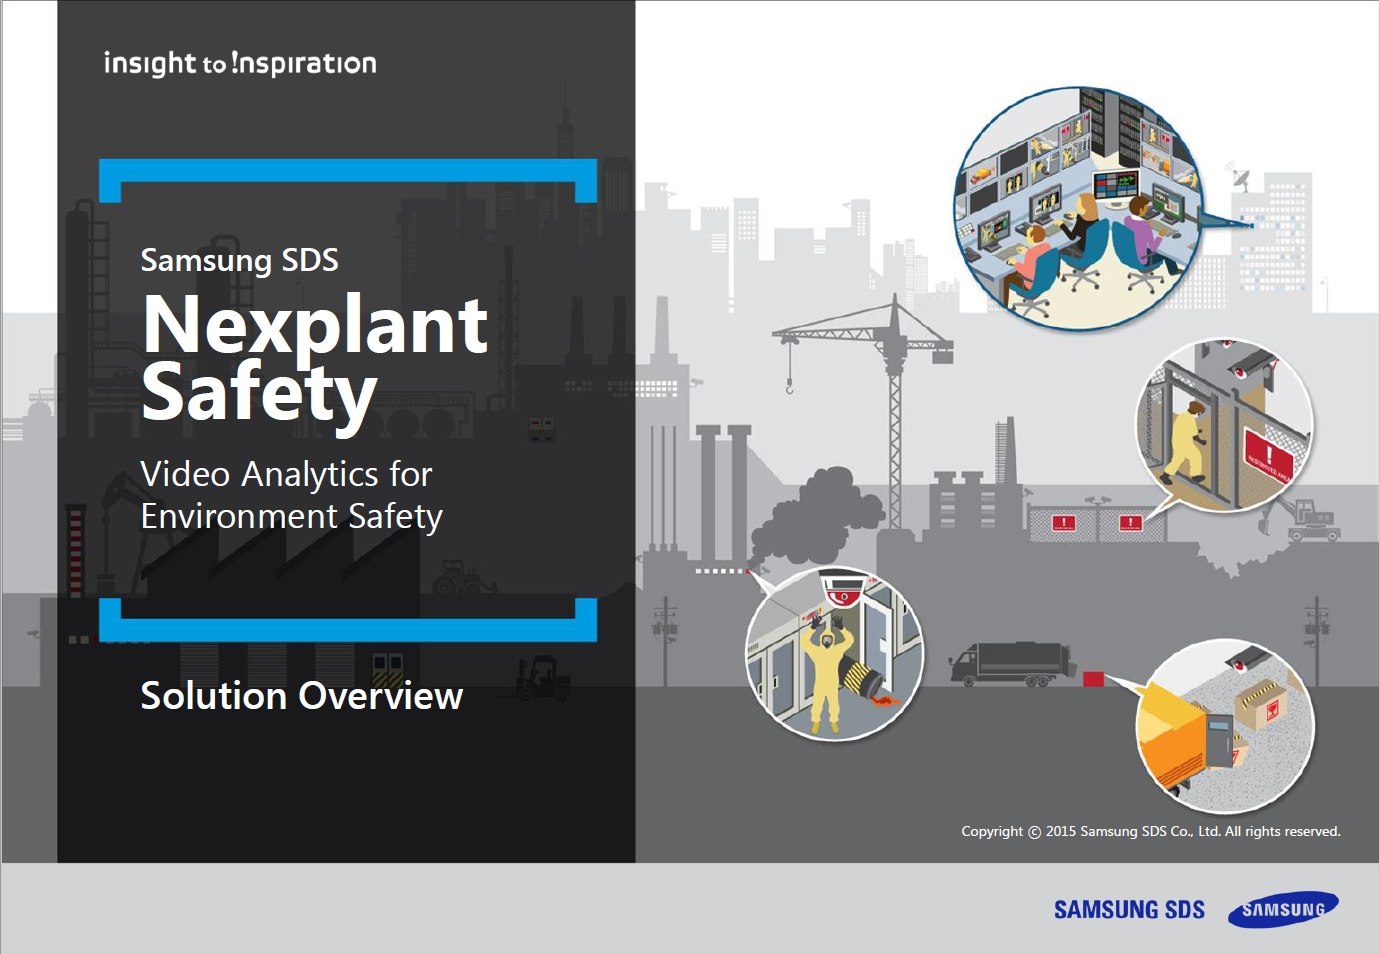 [Nexplant Safety] A new standard of safety for your operations